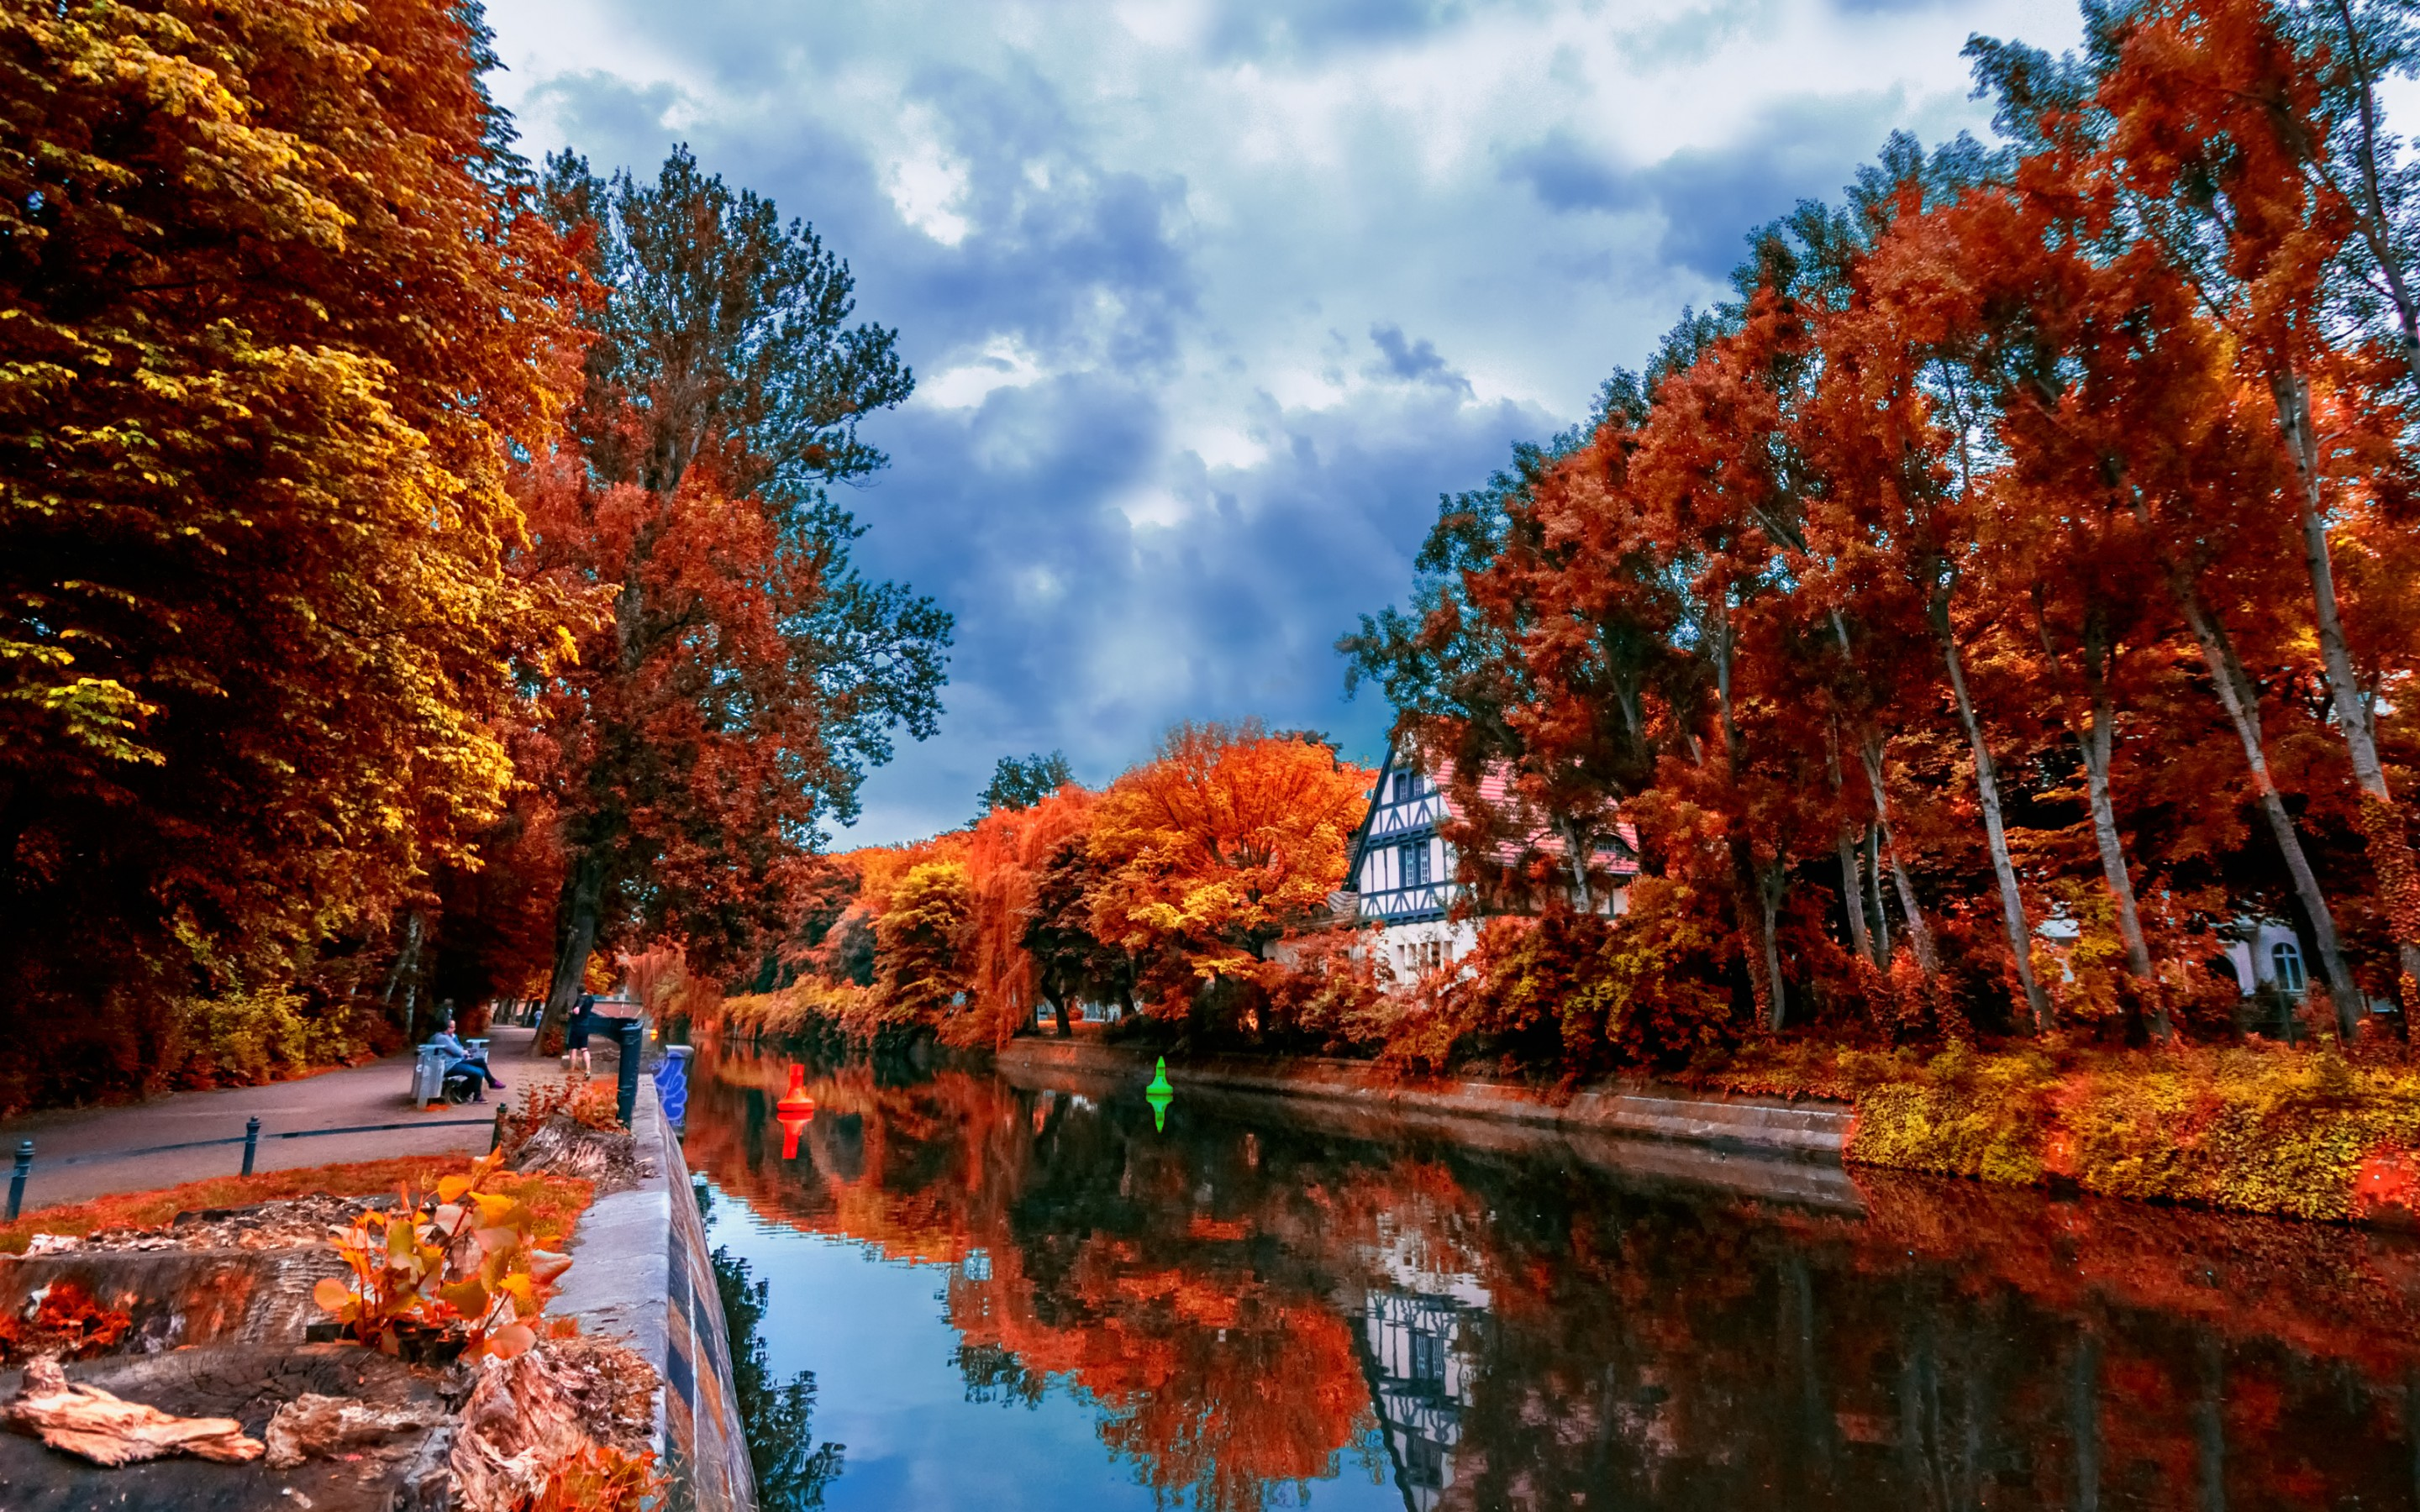 Reflection hd wallpaper background image 2880x1800 for Desktop sfondi autunno